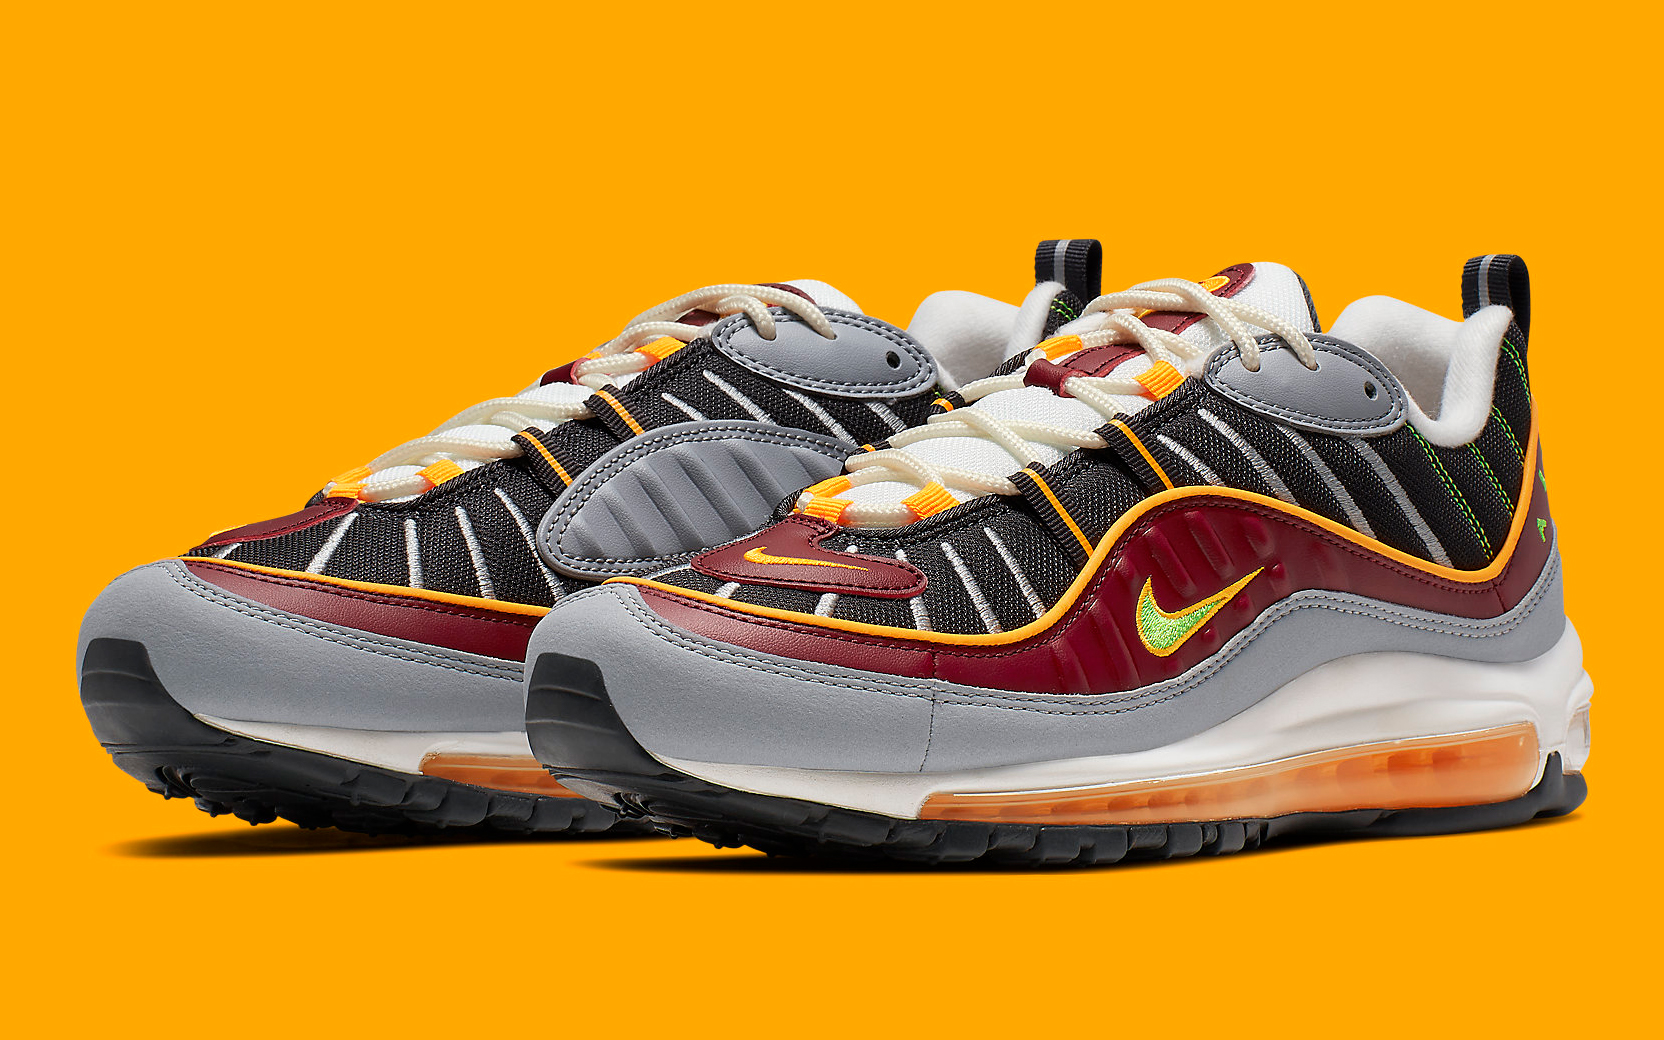 Montañas climáticas milagro Engañoso  Redskins Fans will Rally 'round these Air Max 98s - HOUSE OF HEAT   Sneaker  News, Release Dates and Features